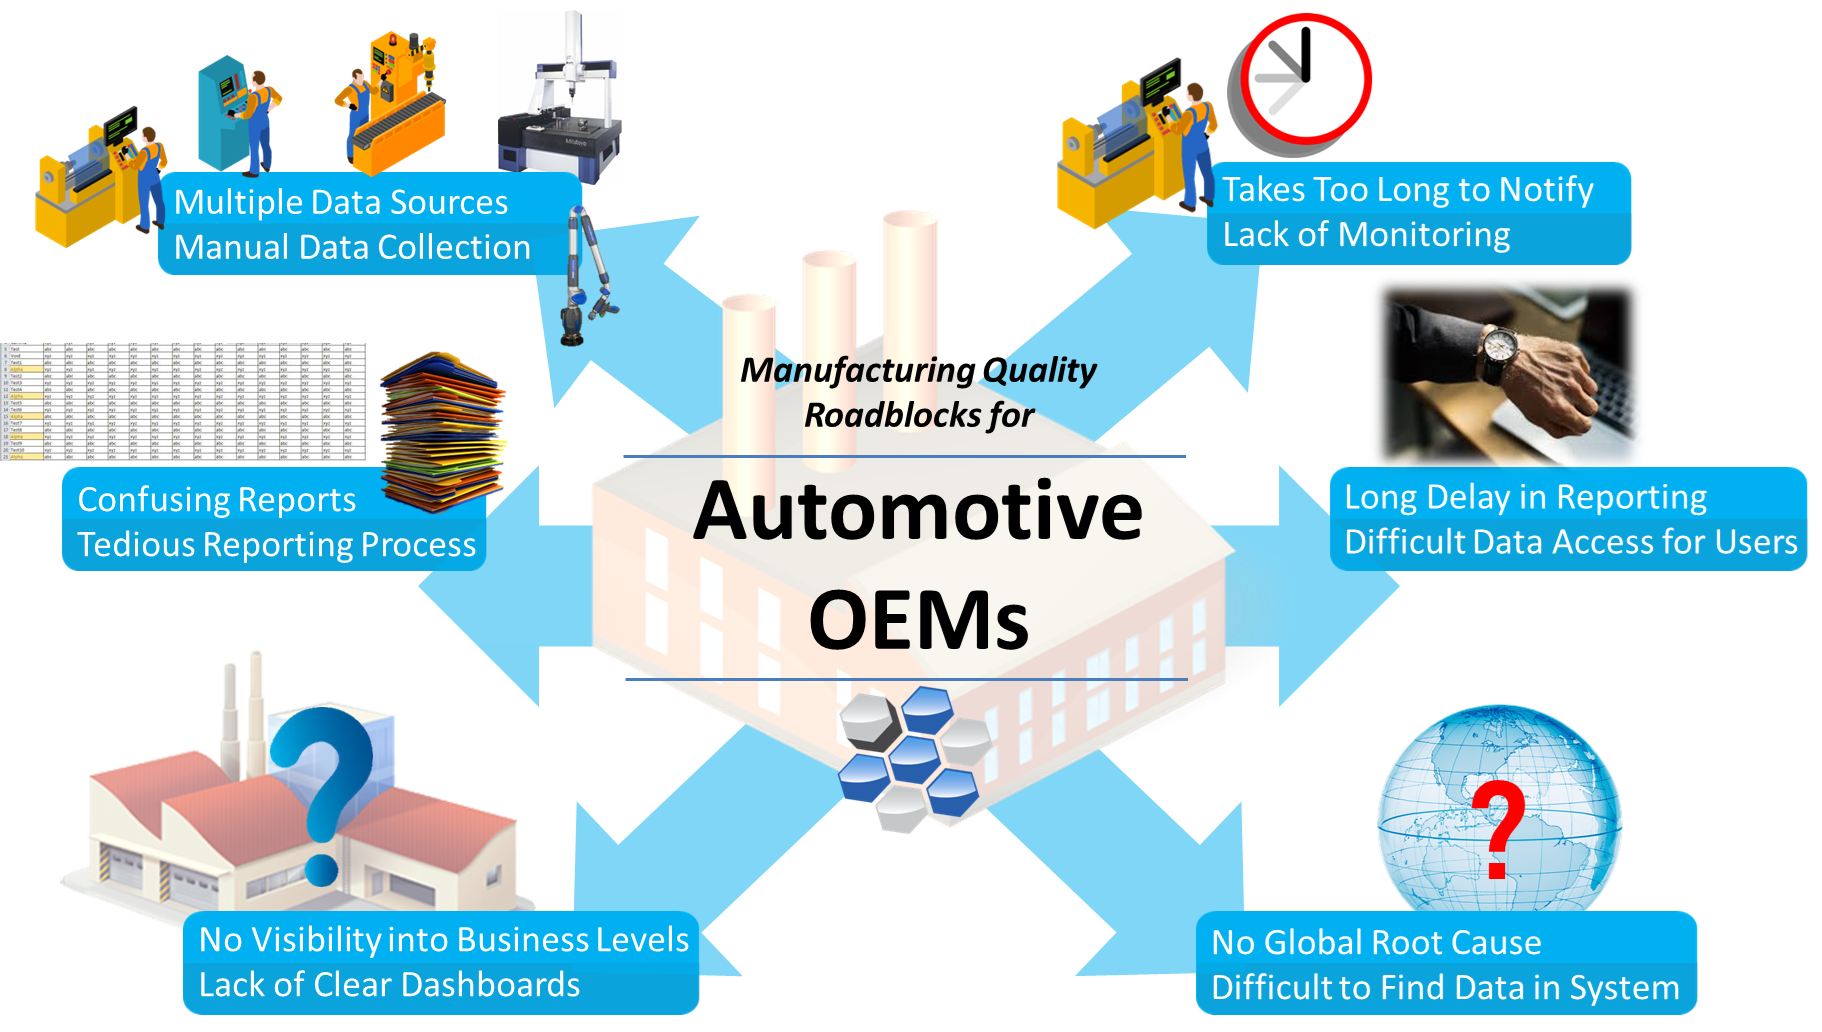 Automotive-OEM-large-image